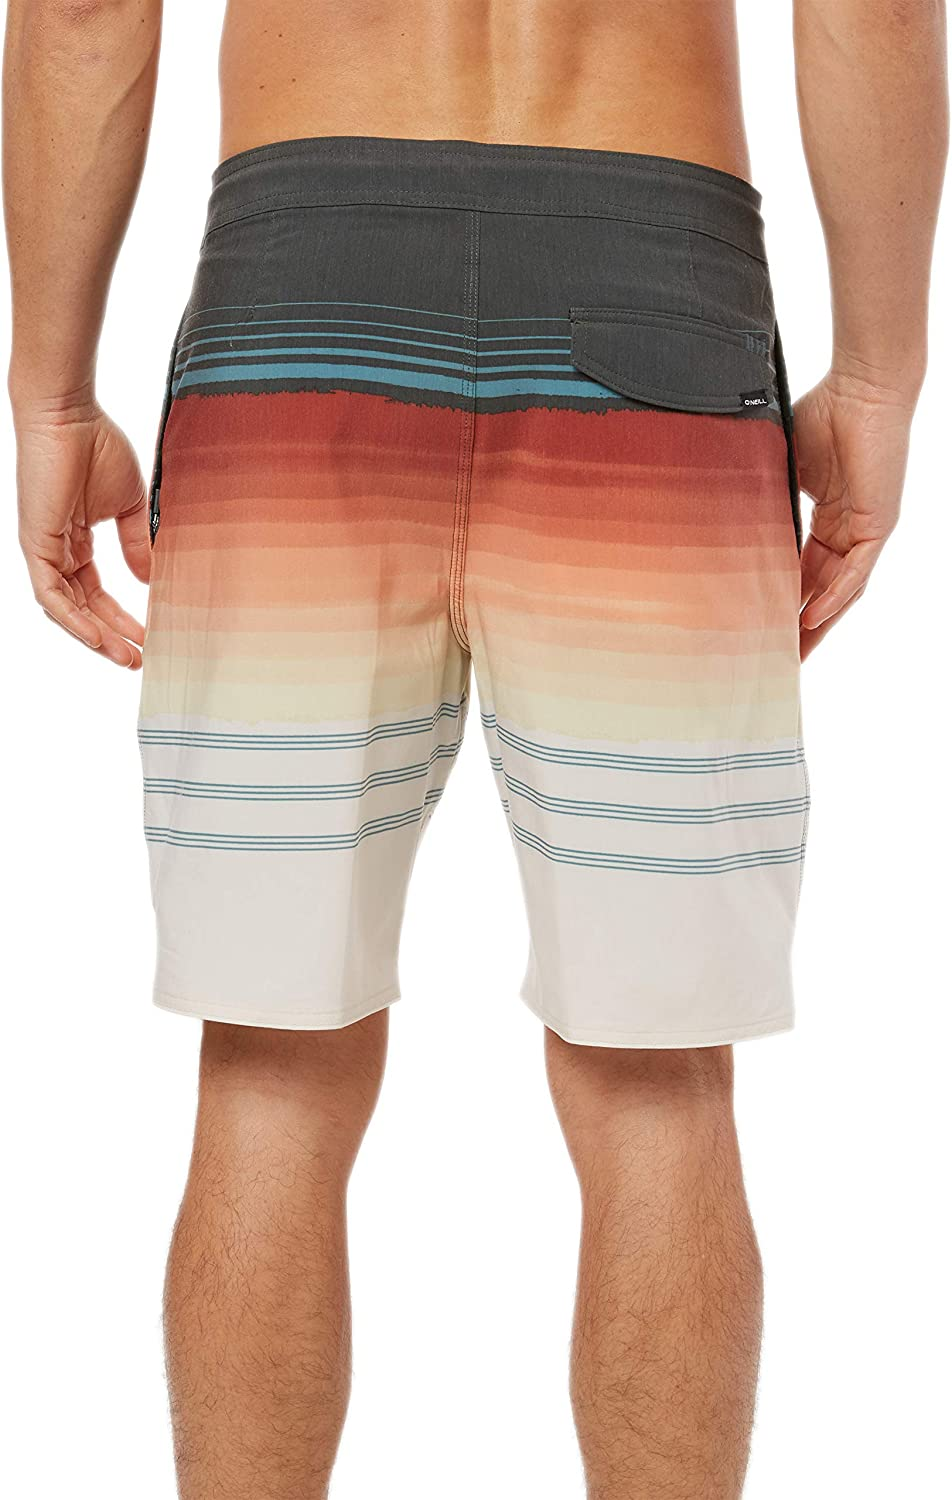 19 Inch Outseam ONEILL Mens Water Resistant Stretch Volley Swim Boardshort Graphite//Timeless, 31